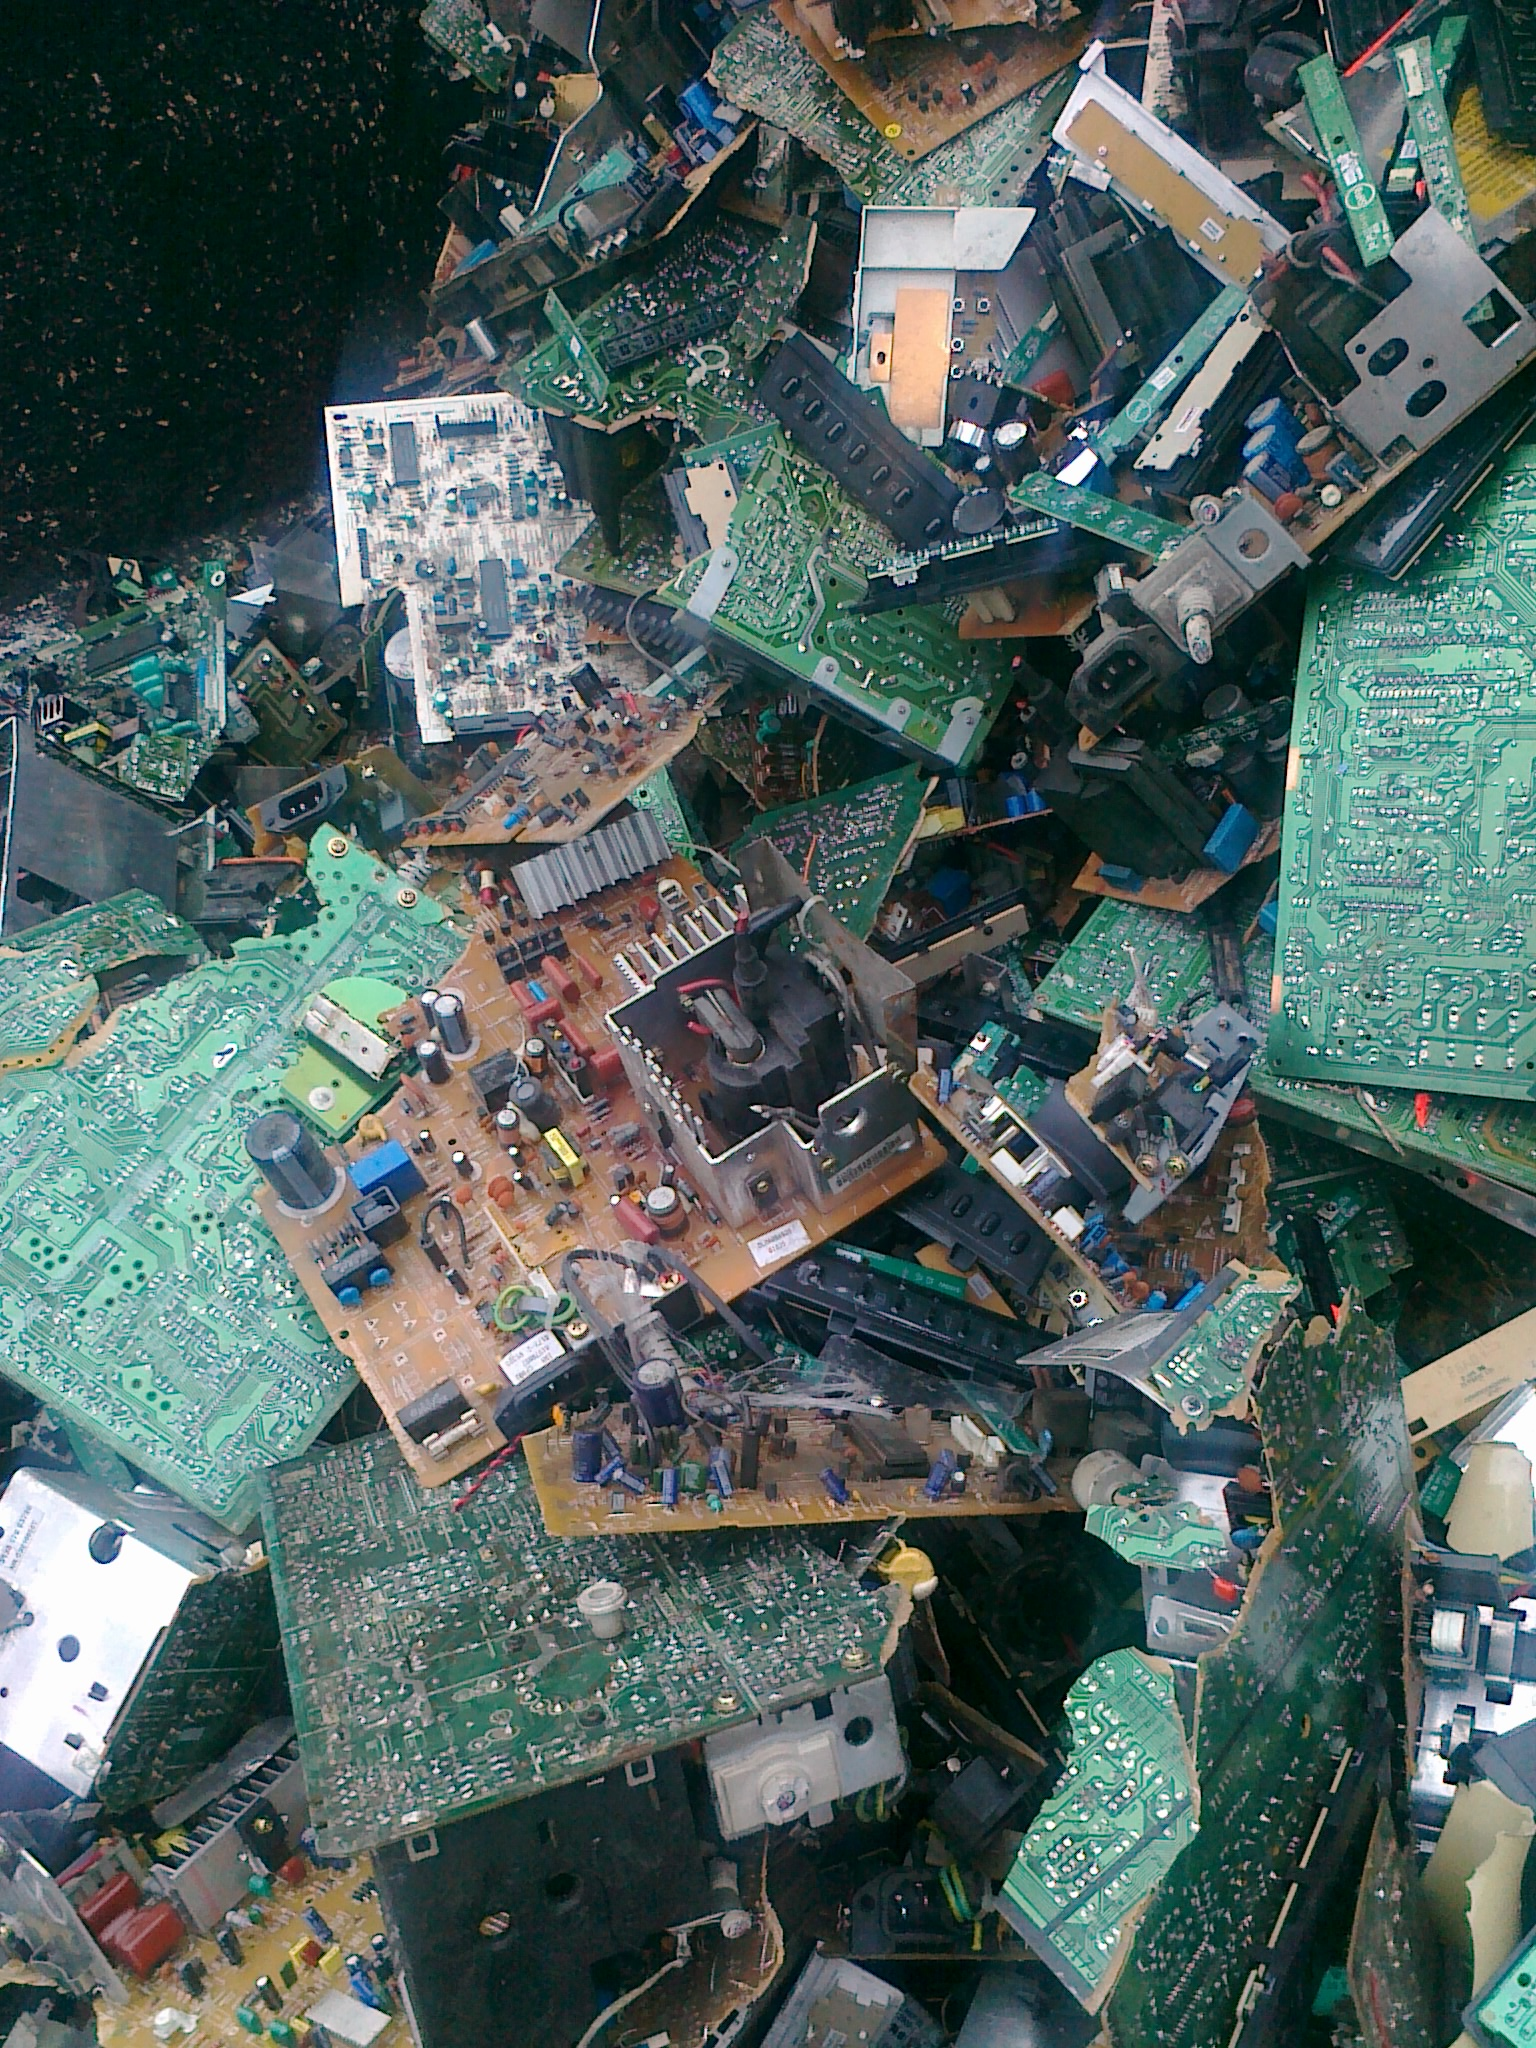 Circuit Boards Scrap Baltic Recycling Uab Recycle Concept Of Electronic Junk